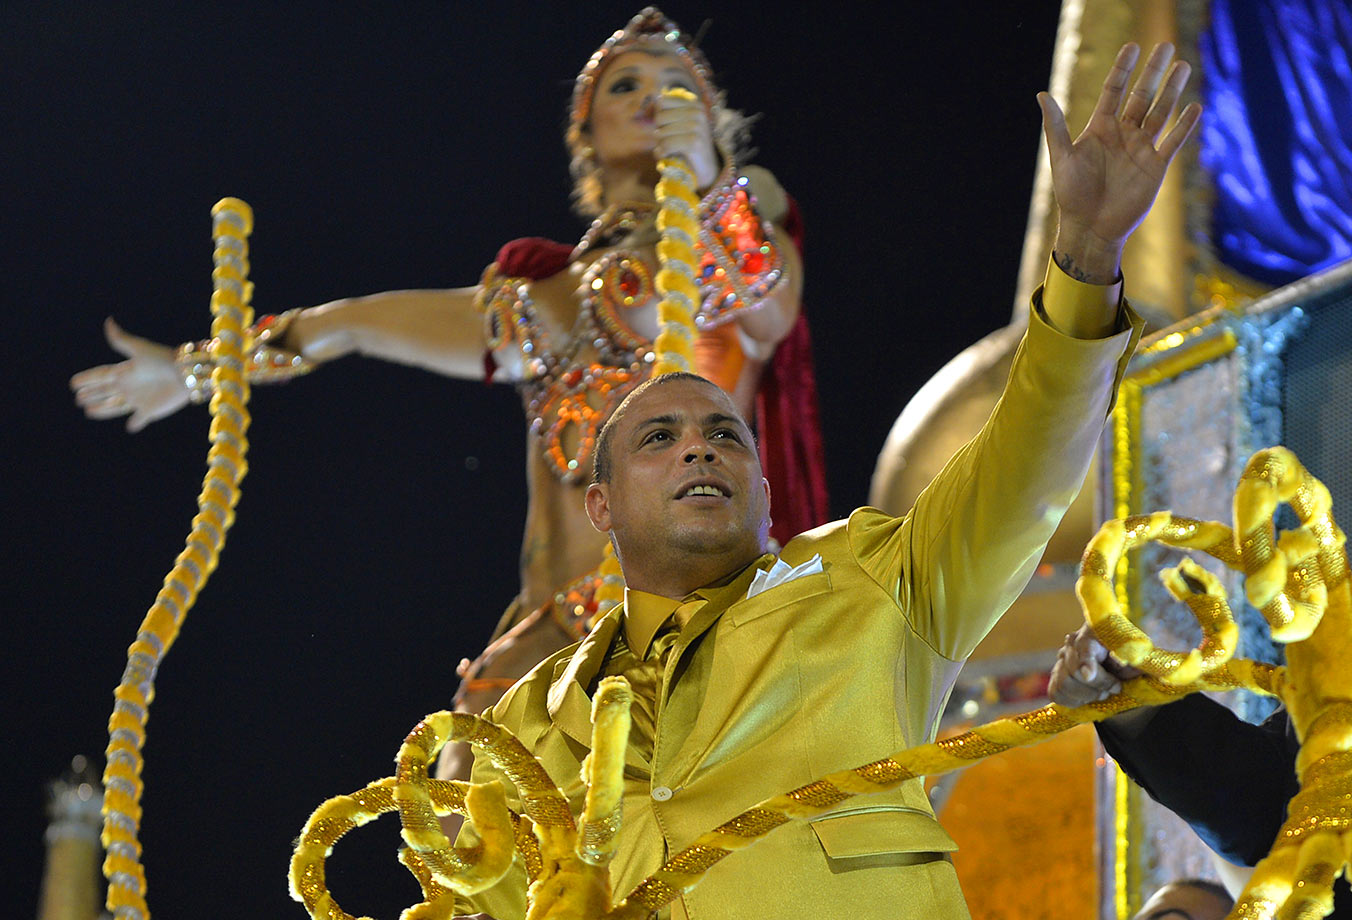 Ronaldo waves from a float as he takes part in Gavioes da Fiel samba school performance during the second night of carnival parade at the Sambadrome in Sao Paulo, Brazil, in March 2014. Gavioes da Fiel's theme for the carnival was an homage to Ronaldo.